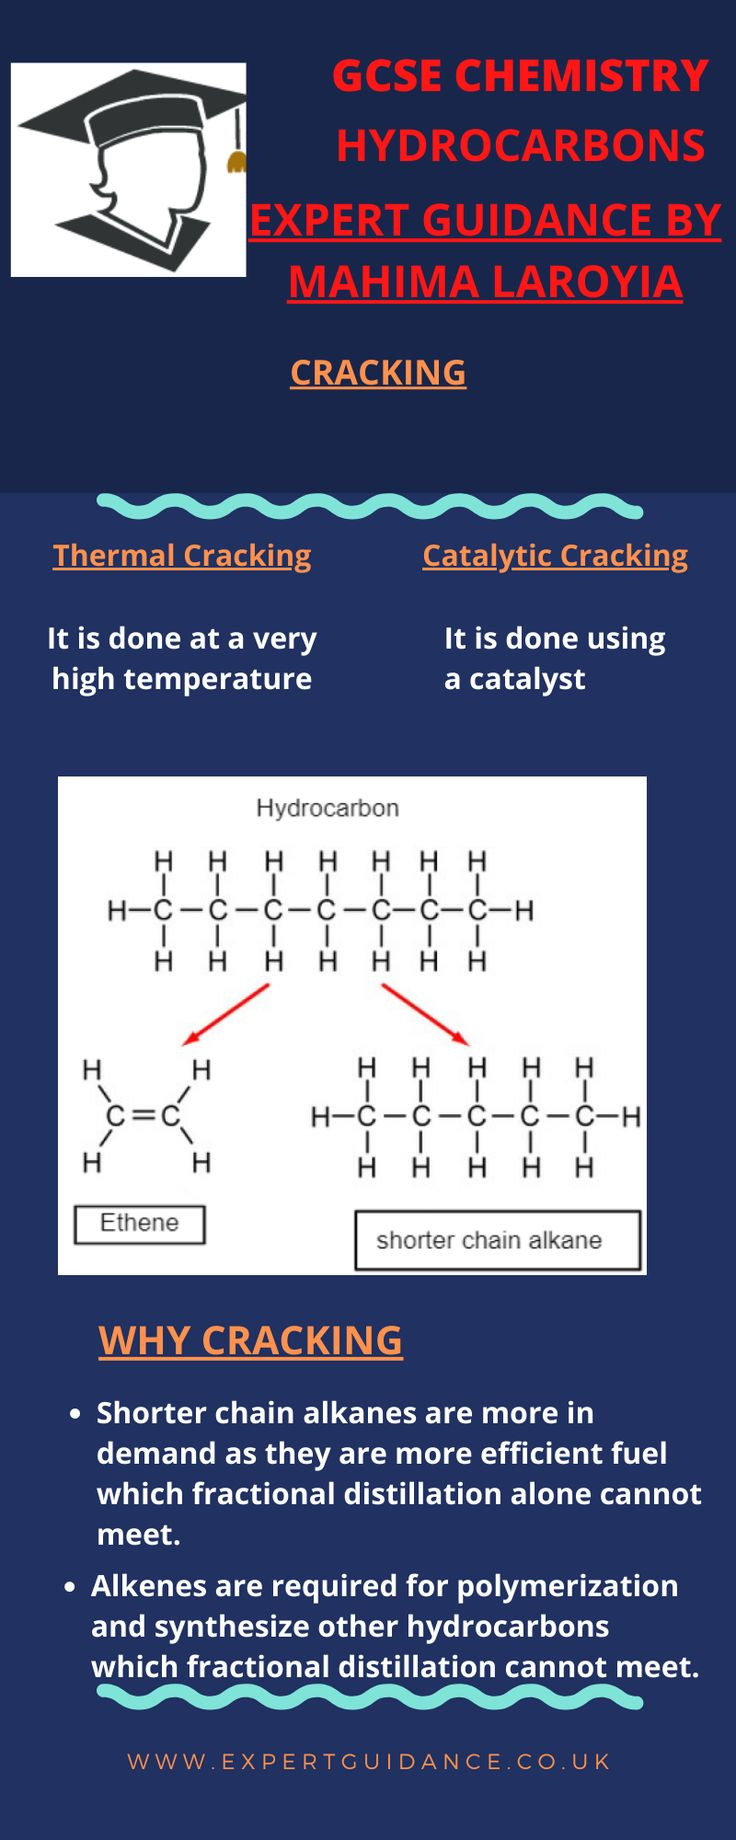 Aqa Gcse C9 Hydrocarbons Chemistry Paper 2 Complete Revision Summary With Notes Q A Videos Chemistry Paper Gcse Chemistry Gcse Science What is addition polymerization with